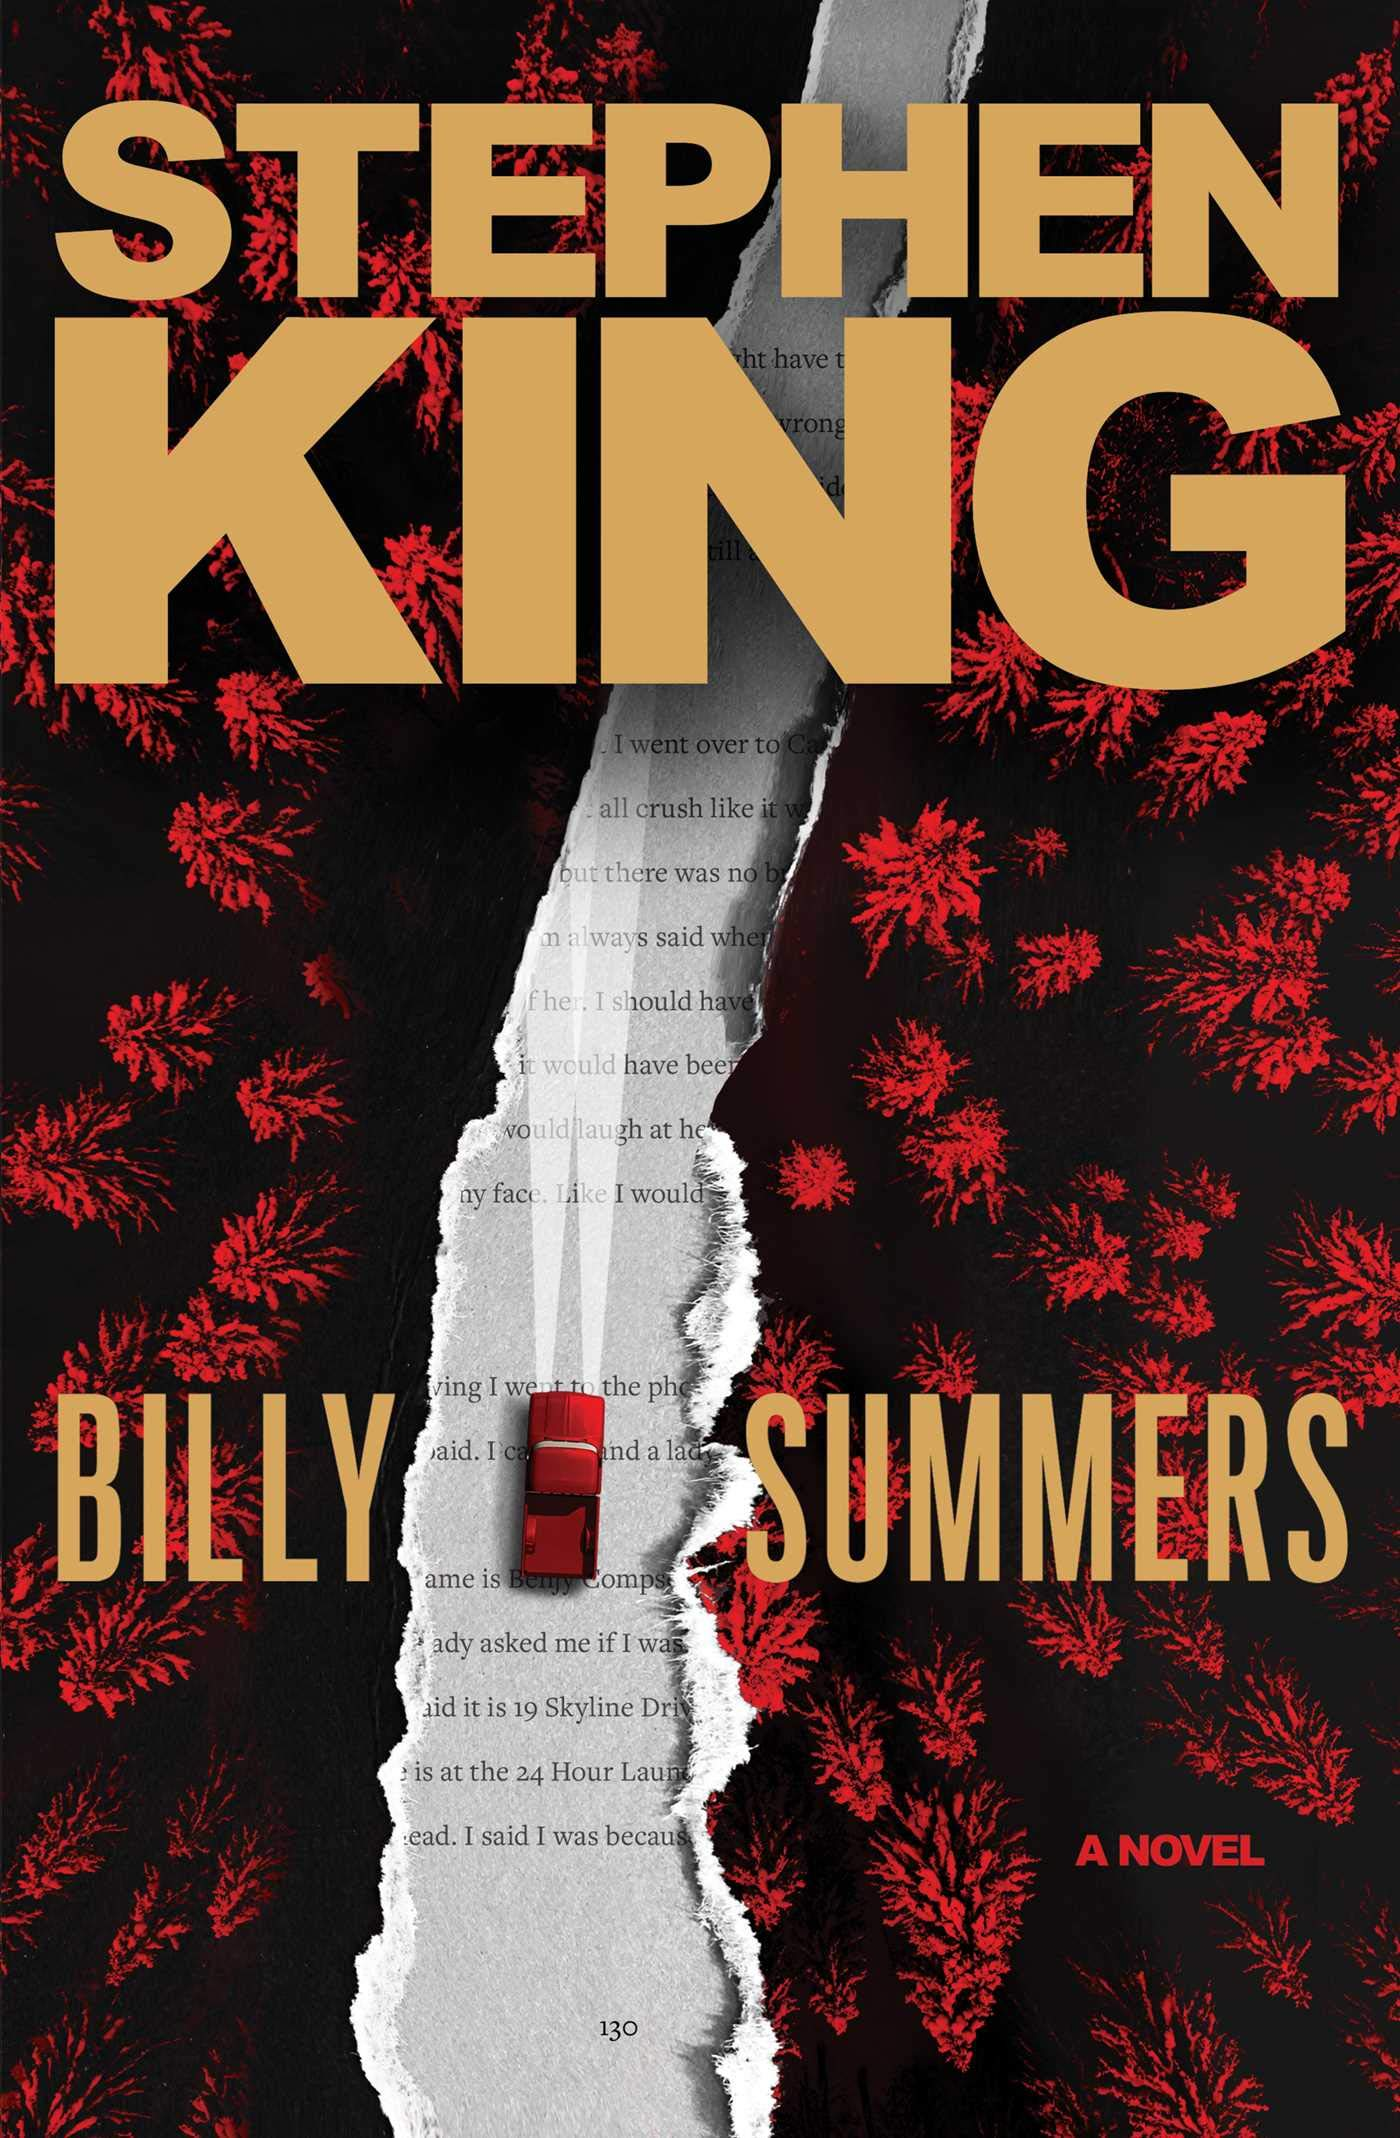 Amazon.com: Billy Summers: 9781982173616: King, Stephen: Books